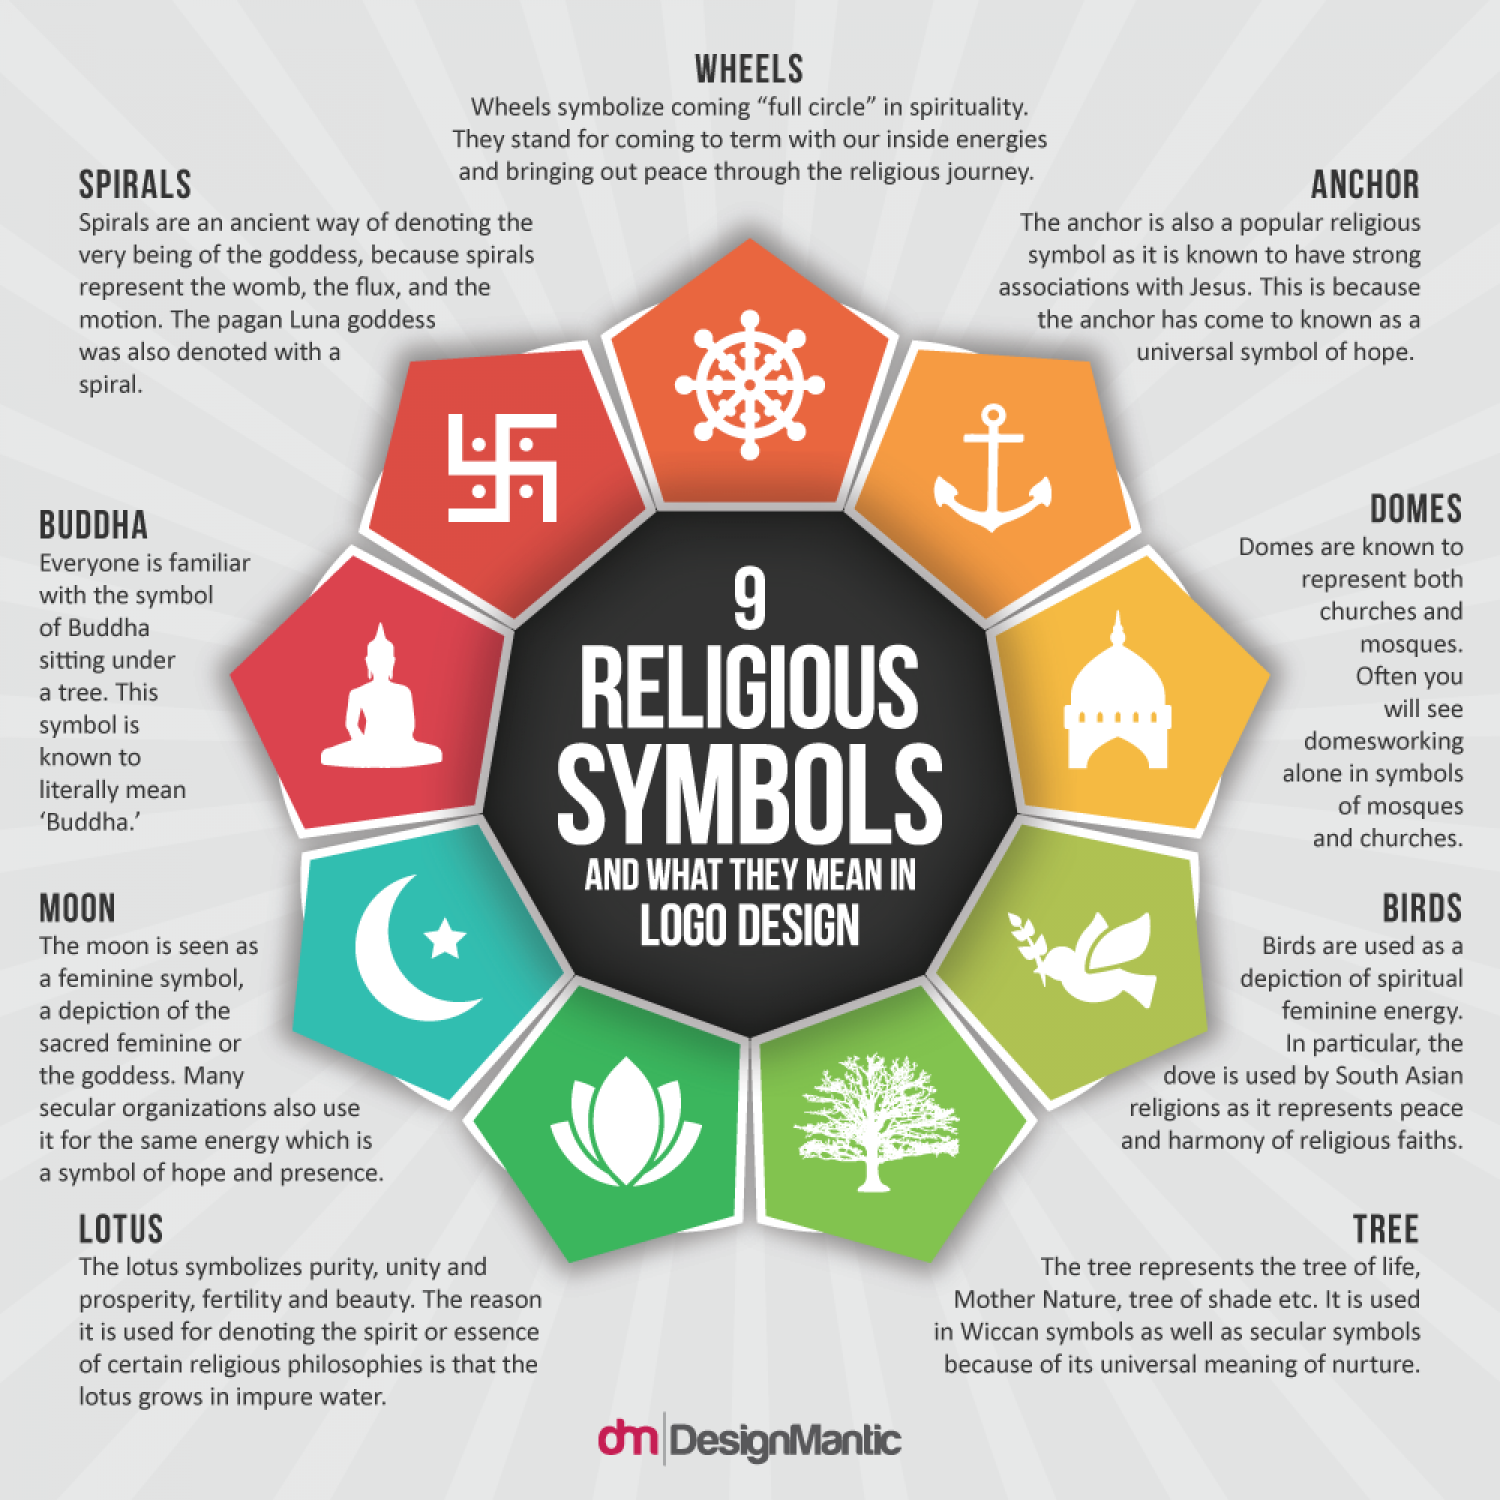 9 religious symbols and what they mean in logo design visual 9 religious symbols and what they mean in logo design infographic biocorpaavc Image collections